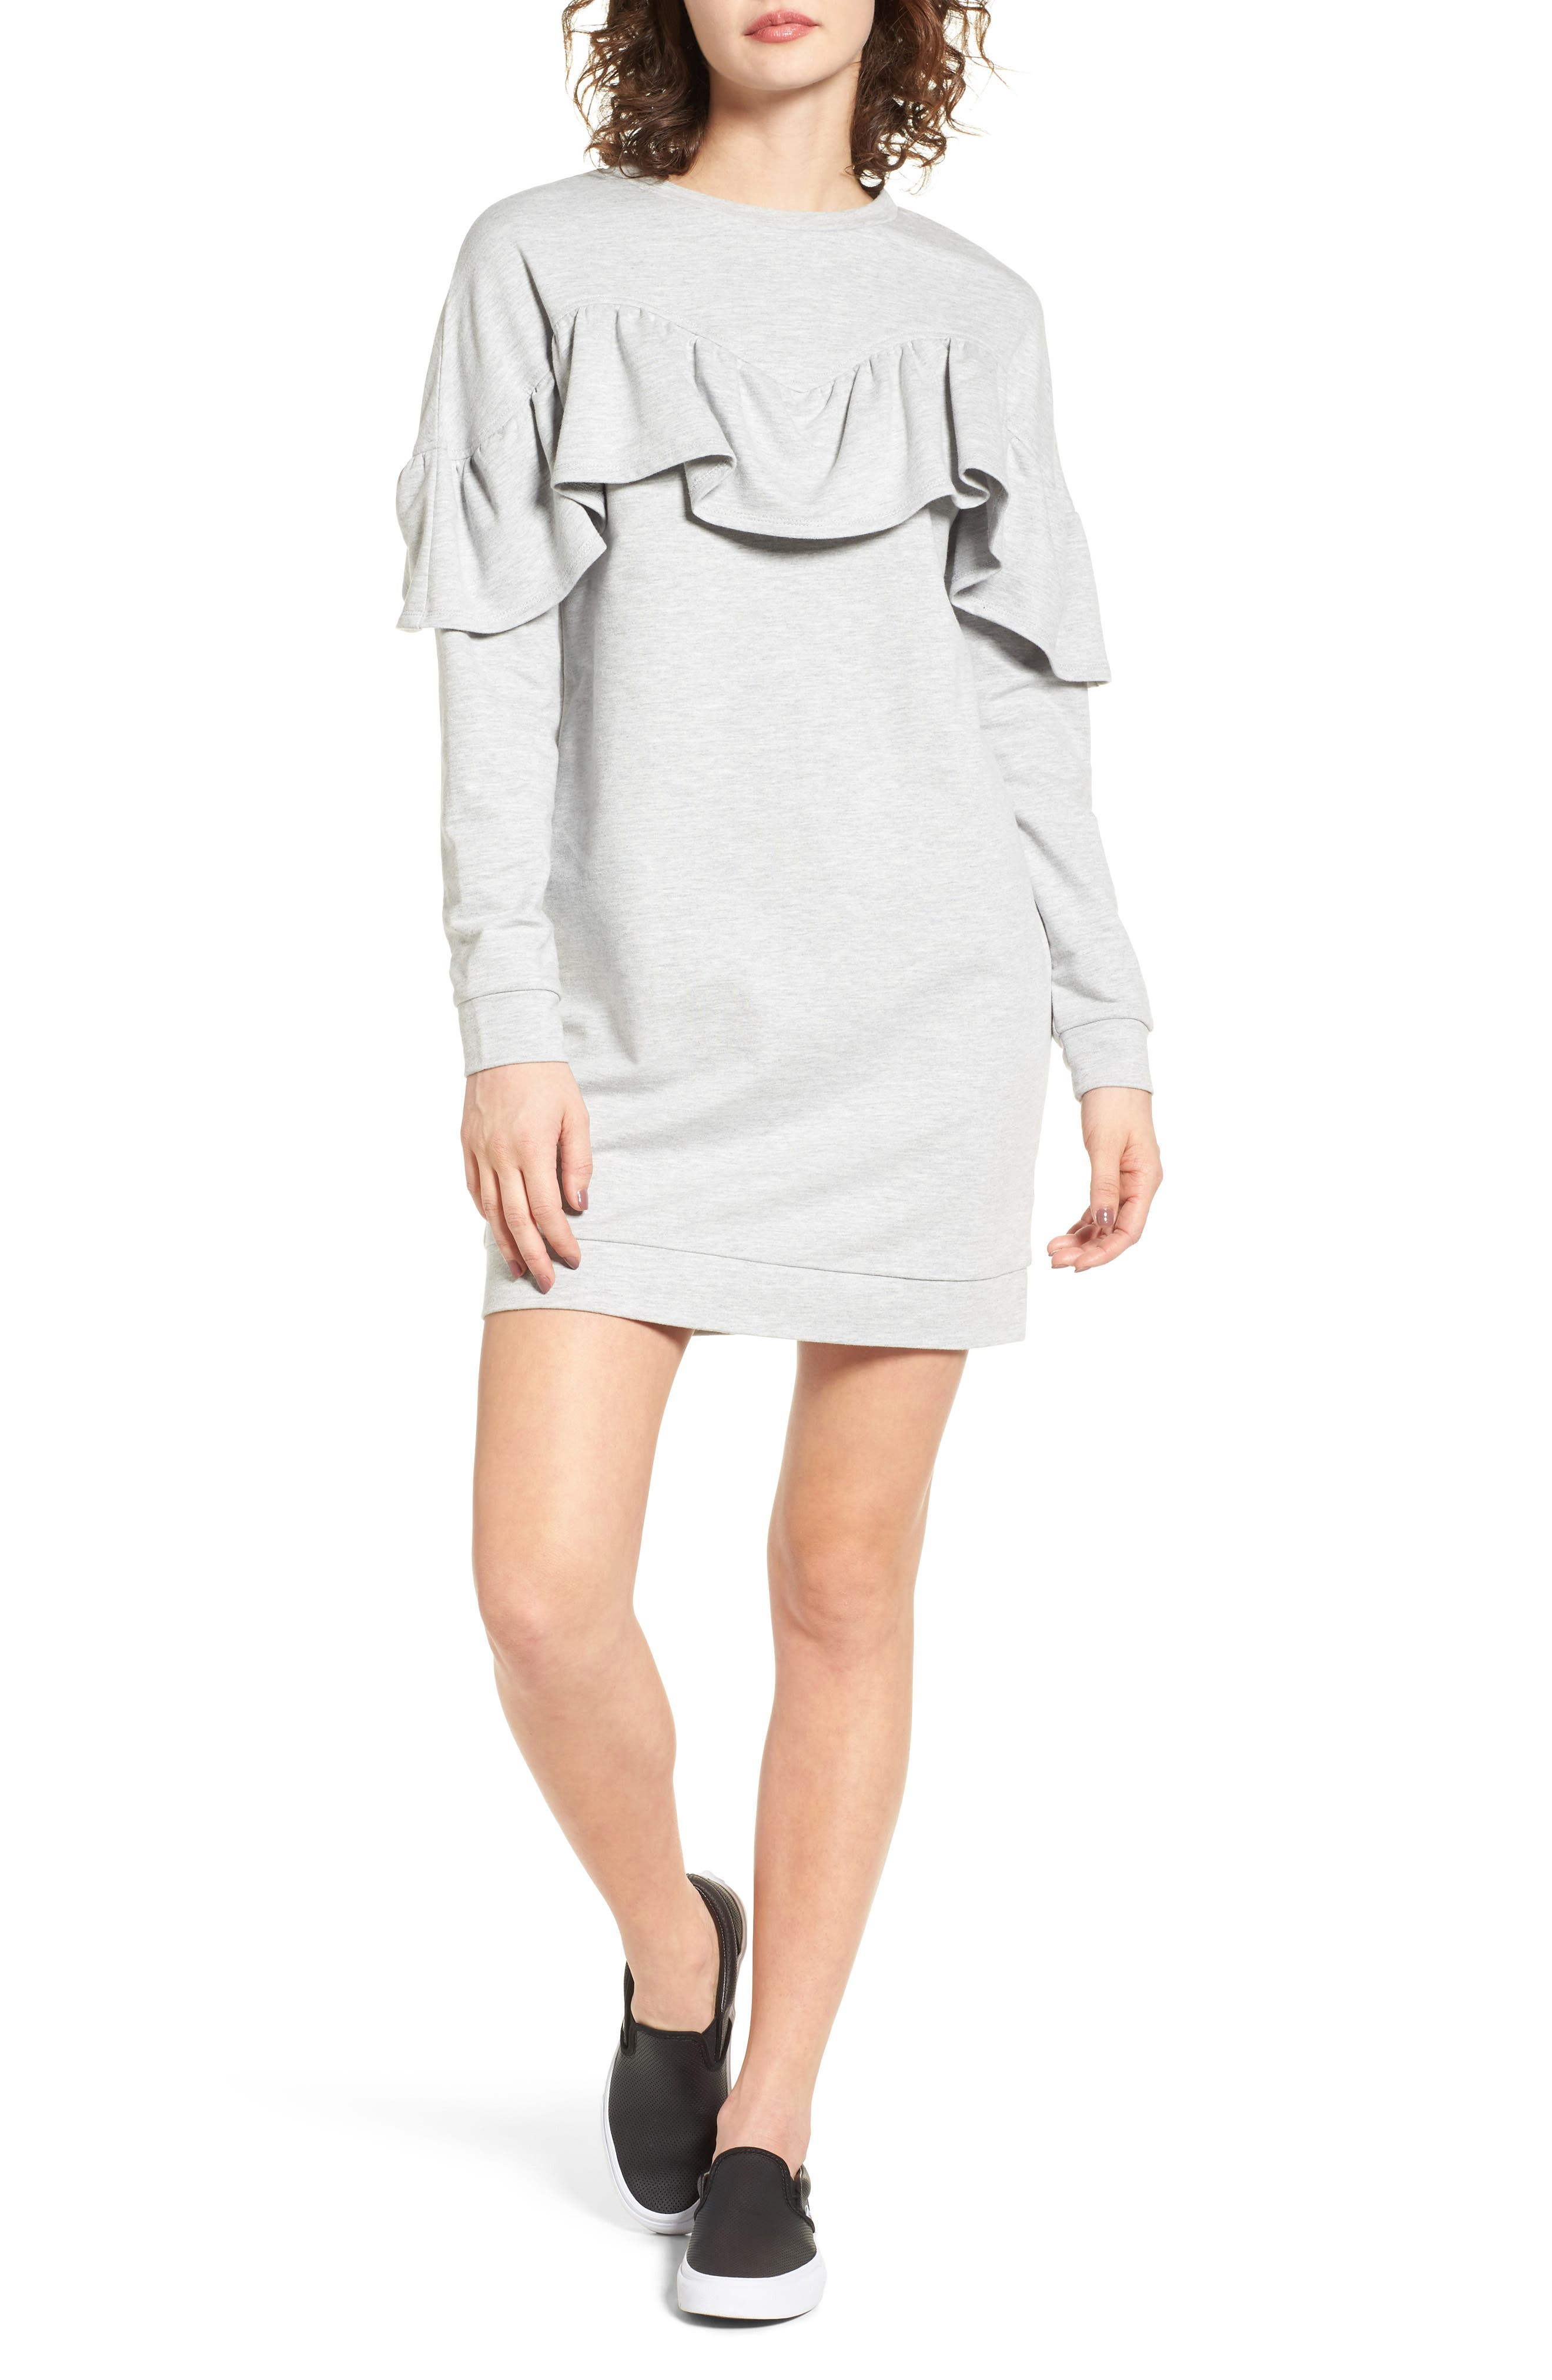 LOVE, FIRE Ruffle Sweatshirt Dress